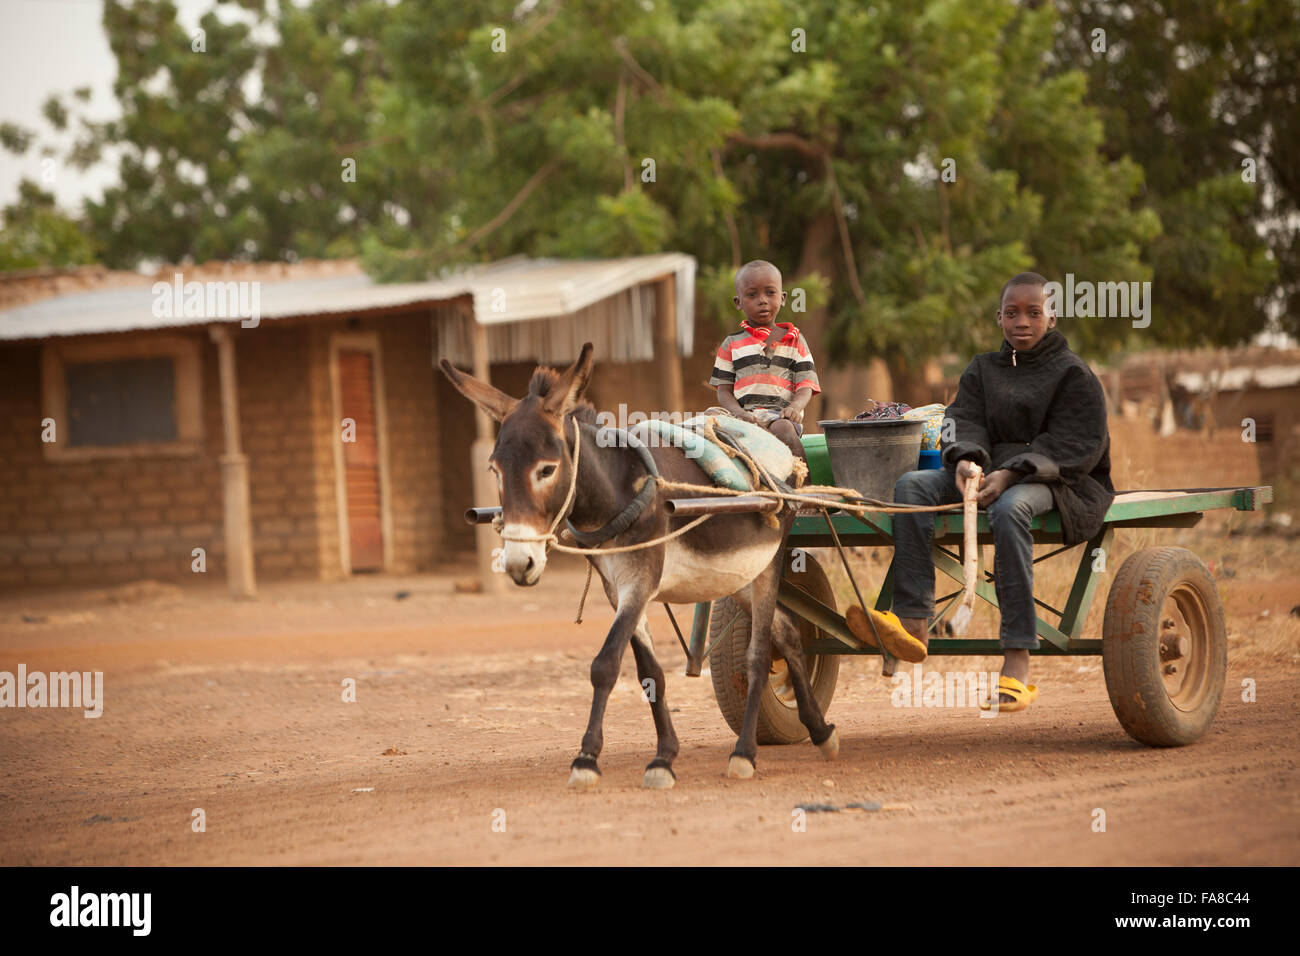 Children ride in a donkey-drawn cart in Sourou Province, Burkina Faso. - Stock Image